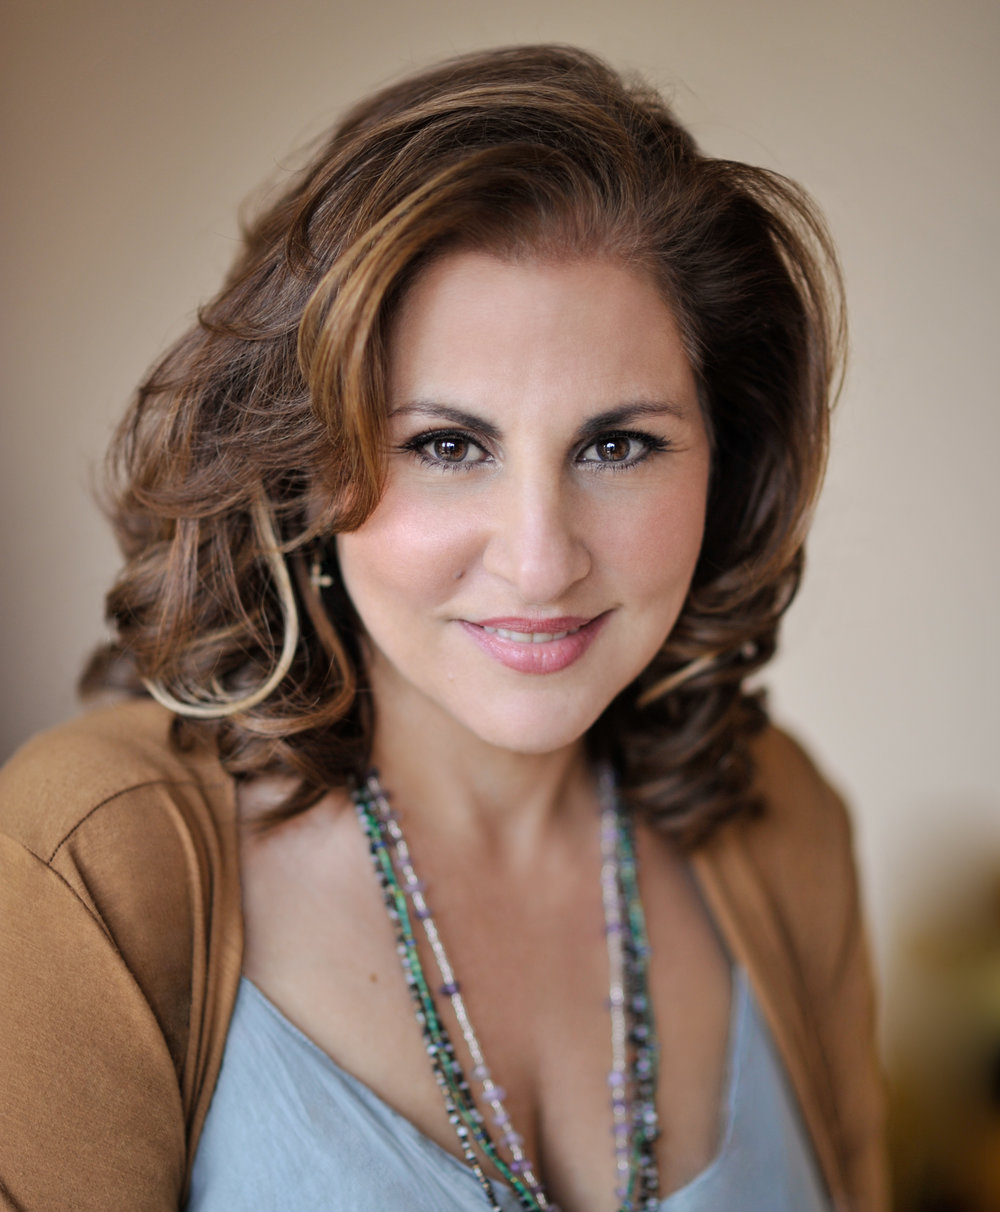 "Kathy Najimy - Kathy Najimy Is known for her memorable performances in over 25 films and several TV projects. She most recently received the Lilly Actress/Activist award from Gloria Steinem and is very proud to have been named a Ms. Magazine Woman of the Year.With Mo Gaffney, Najimy wrote and starred in The Kathy and Mo Show, her long-running off-Broadway play (Obie Award), which became two award-winning Hit HBO specials. Kathy currently recurs on Veep, Graves, and Younger. Kathy is known for her award-winning portrayal of ""Sister Mary Patrick"" in the blockbuster hits Sister Acts 1 & 2.  Her work includes starring roles in Hocus Pocus, Rat Race, Pixar's Oscar and Golden Globe winning WALL-E, Madea Christmas and Say Uncle (Philadelphia Film Festival Best Actress), among others. In the theater, Kathy starred as legendary ""Mae West"" on Broadway in the hit Broadway play Dirty Blonde, and later at The Old Globe Theatre (Outer Critics Circle Best Actress). Najimy is currently rehearsing her solo show for the NY stage, ""Lift Up Your Skirt"". Kathy is also thrilled to be currently co-executive producing a television series about the women's movement.For her over 30 years of AIDS activism, Najimy has been honored with the L.A. Shanti's Founder award as well as the L.A. Gay and Lesbian Center's Distinguished Achievement award. She is an enthusiastic supporter of Women and Girls' Rights, AIDS Awareness, Animal Rights, Women's Choice, and frequently travels around the country to keynote speak on these issues. Najimy has lent her support to a variety of worthy organizations that include:  NYClass, Project Angel Food, APLA, GLAAD, GMHC, Human Rights Campaign Fund, Broadway Cares, Equity Fights AIDS, The Ms. Foundation, AMFAR, Planned Parenthood, Voters for Choice, and NARAL. She currently resides in New York City with her husband Dan Finnerty of The Dan band and their glorious 21-year-old actor/singer/songwriter daughter, Samia Najimy Finnerty."